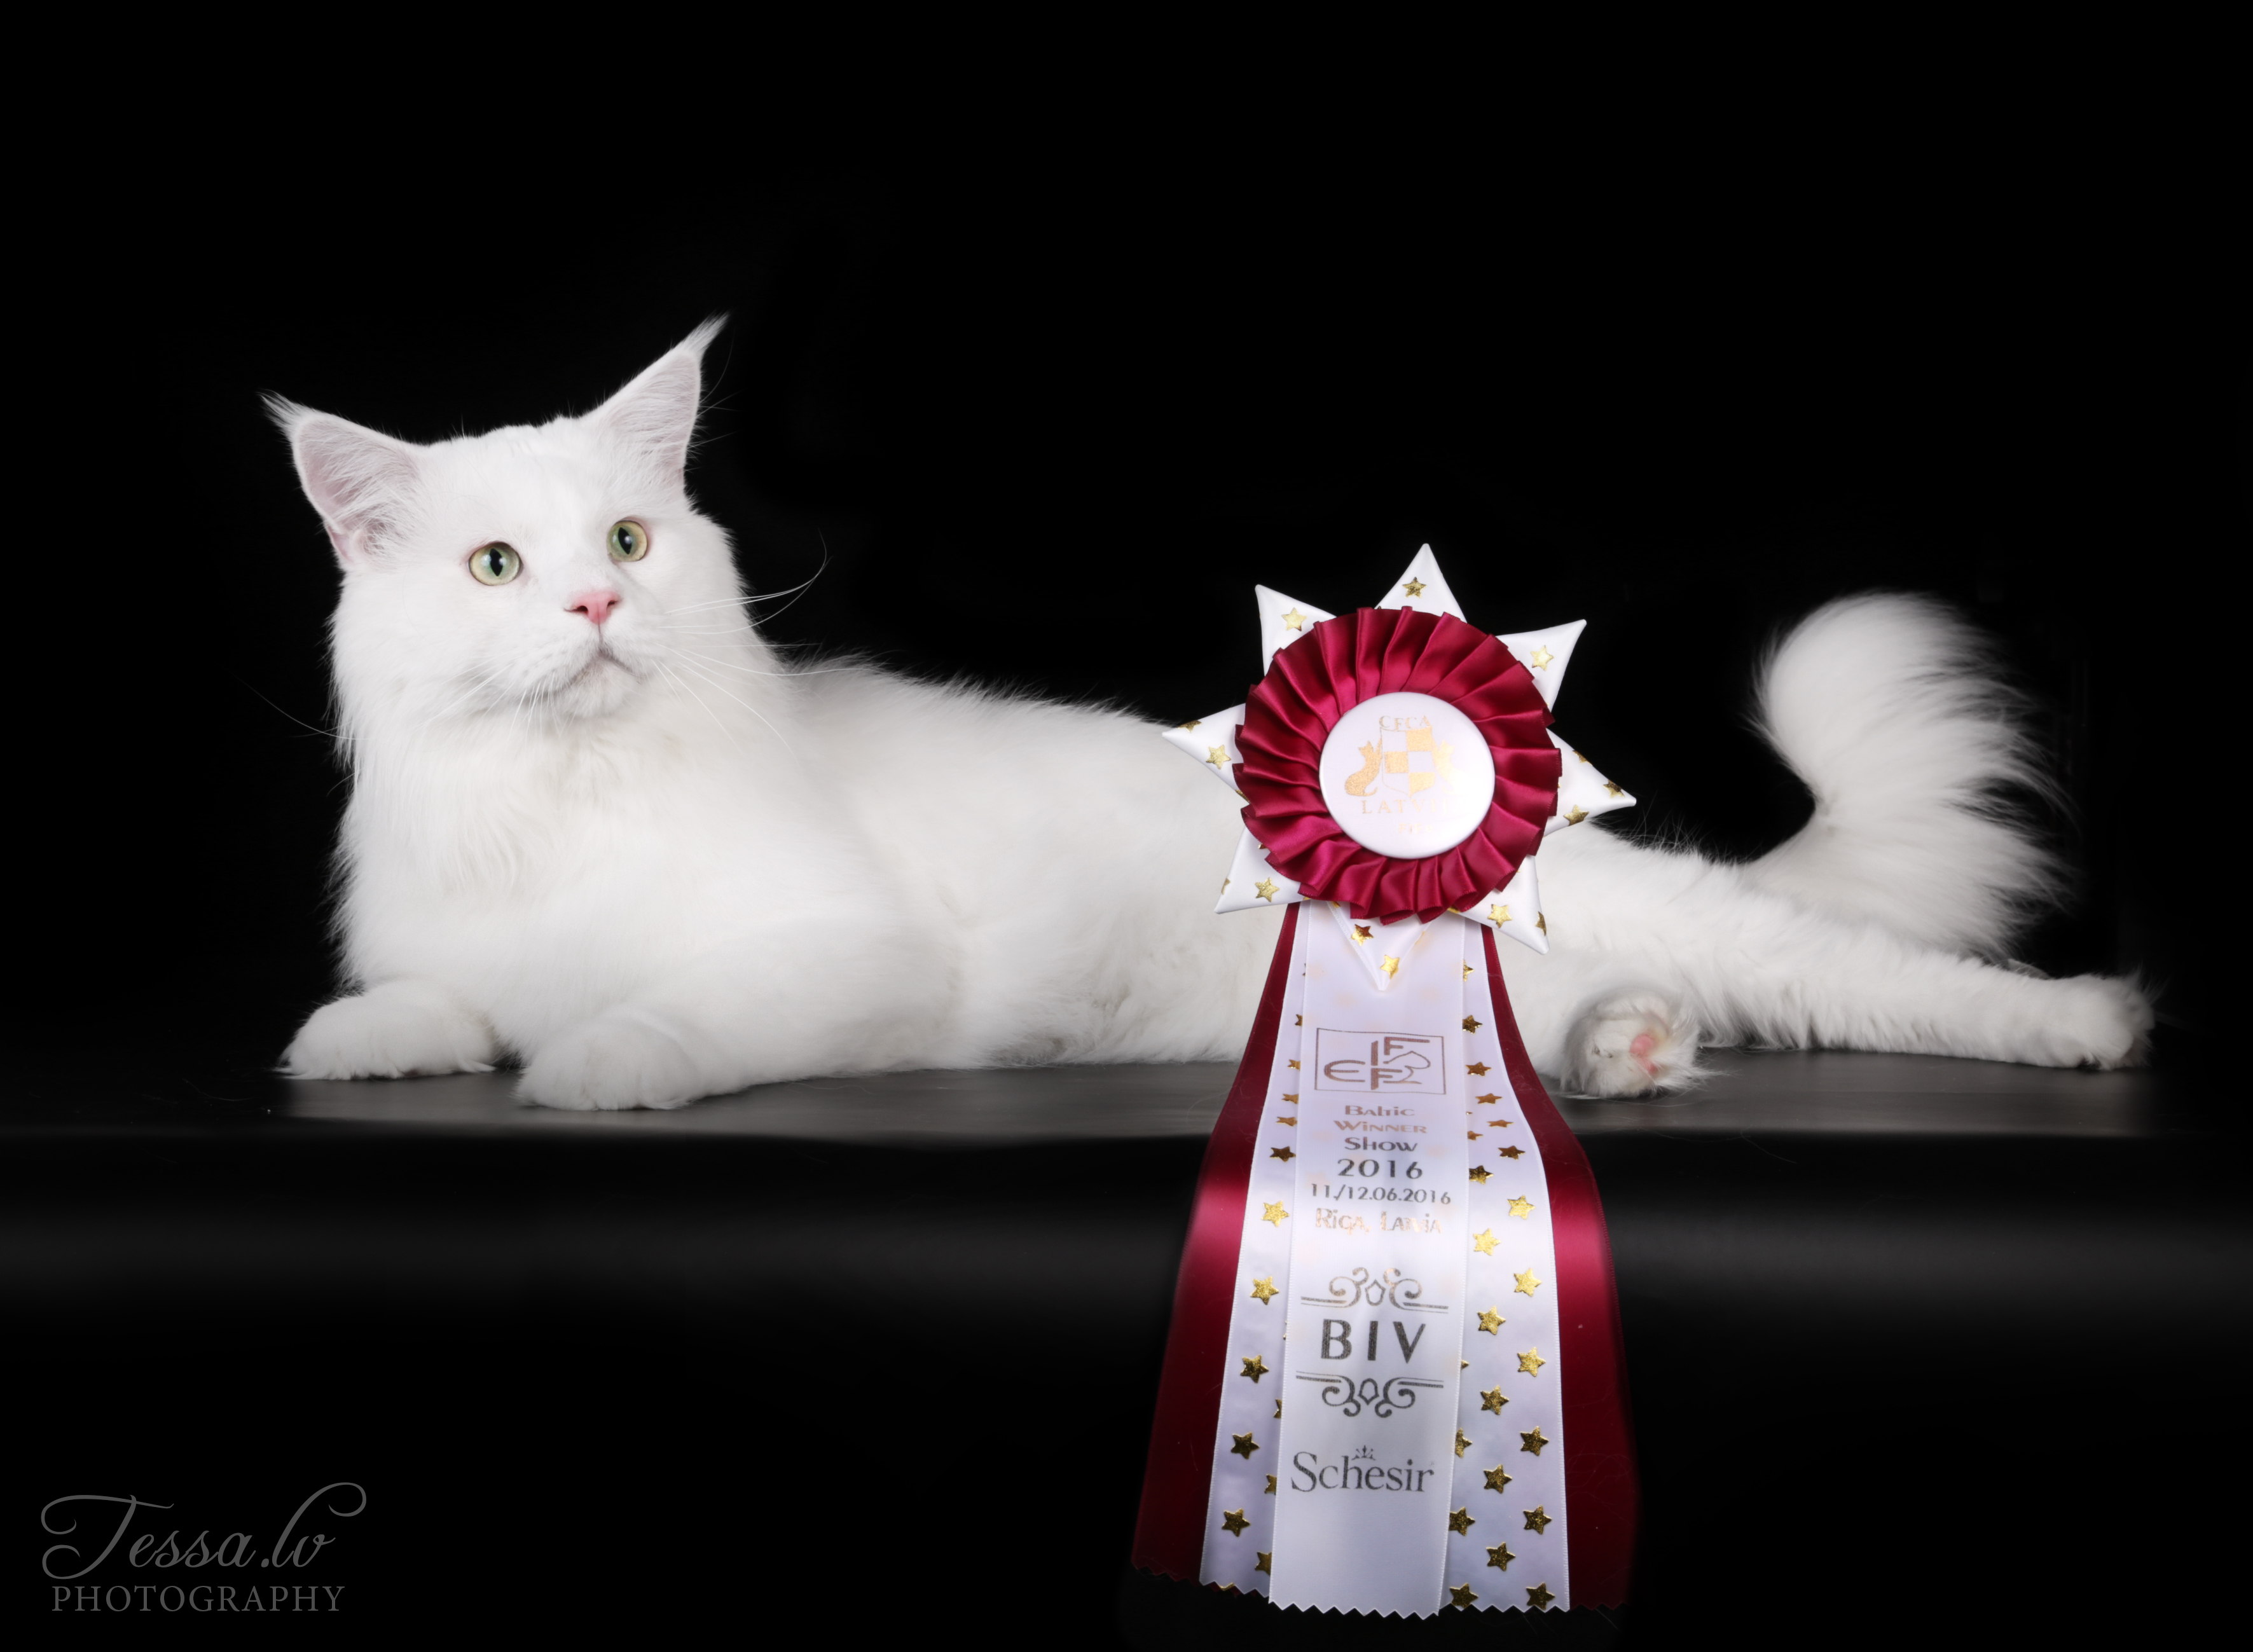 GIC*Krysos All my Life Baltic Winner Show 2016, EX1, CACS and BIV